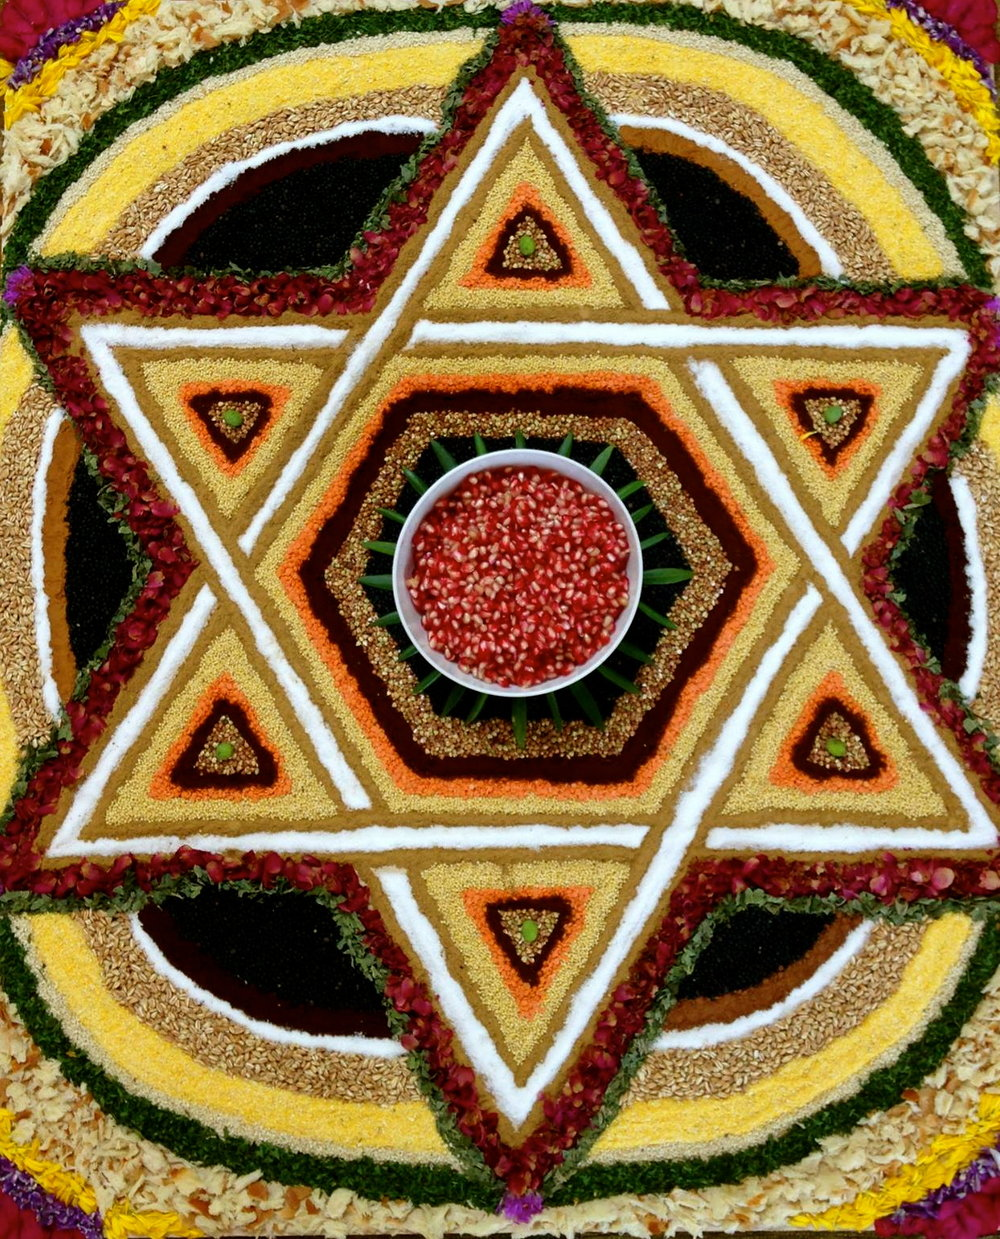 Star of david crafted with ancestral foods made by participants in Hillula: Ancestral healing in jewish traditions workshop with taya shere and daniel foor